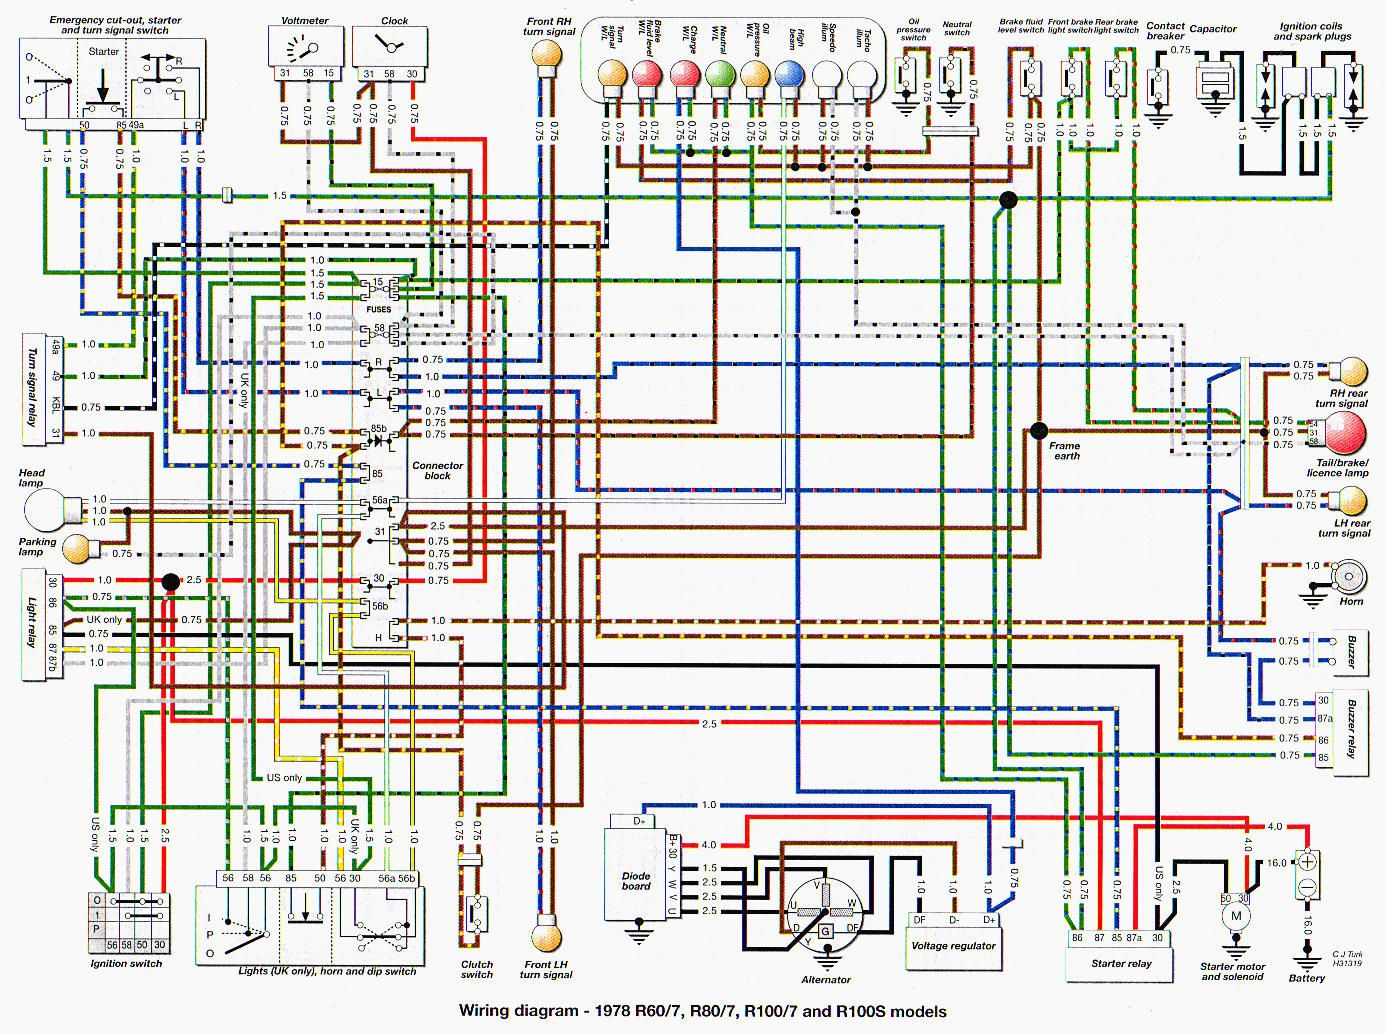 Bmw Wiring Diagram - Wiring Diagram Mega on understanding transformer diagrams, understanding ladder diagrams, pinout diagrams, understanding schematic diagrams, understanding circuits diagrams, understanding foundation diagrams, electronic circuit diagrams, understanding electrical diagrams, understanding engineering drawings,